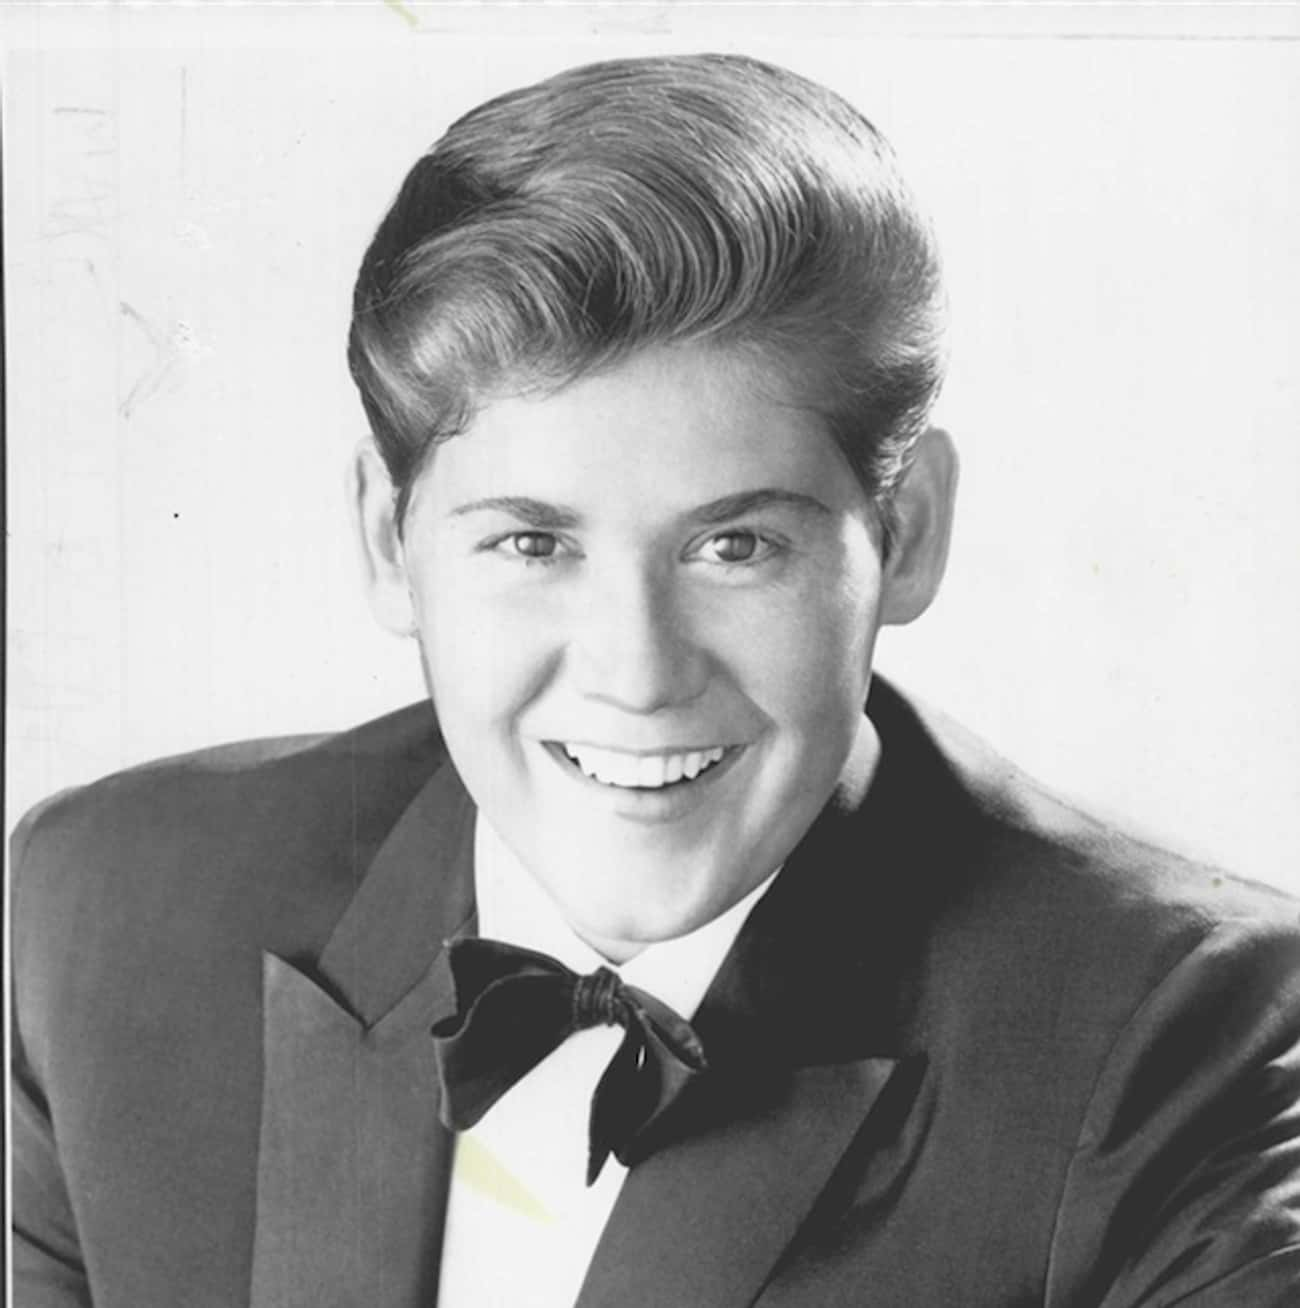 Young Wayne Newton in Black Tu is listed (or ranked) 4 on the list 10 Pictures of Young Wayne Newton